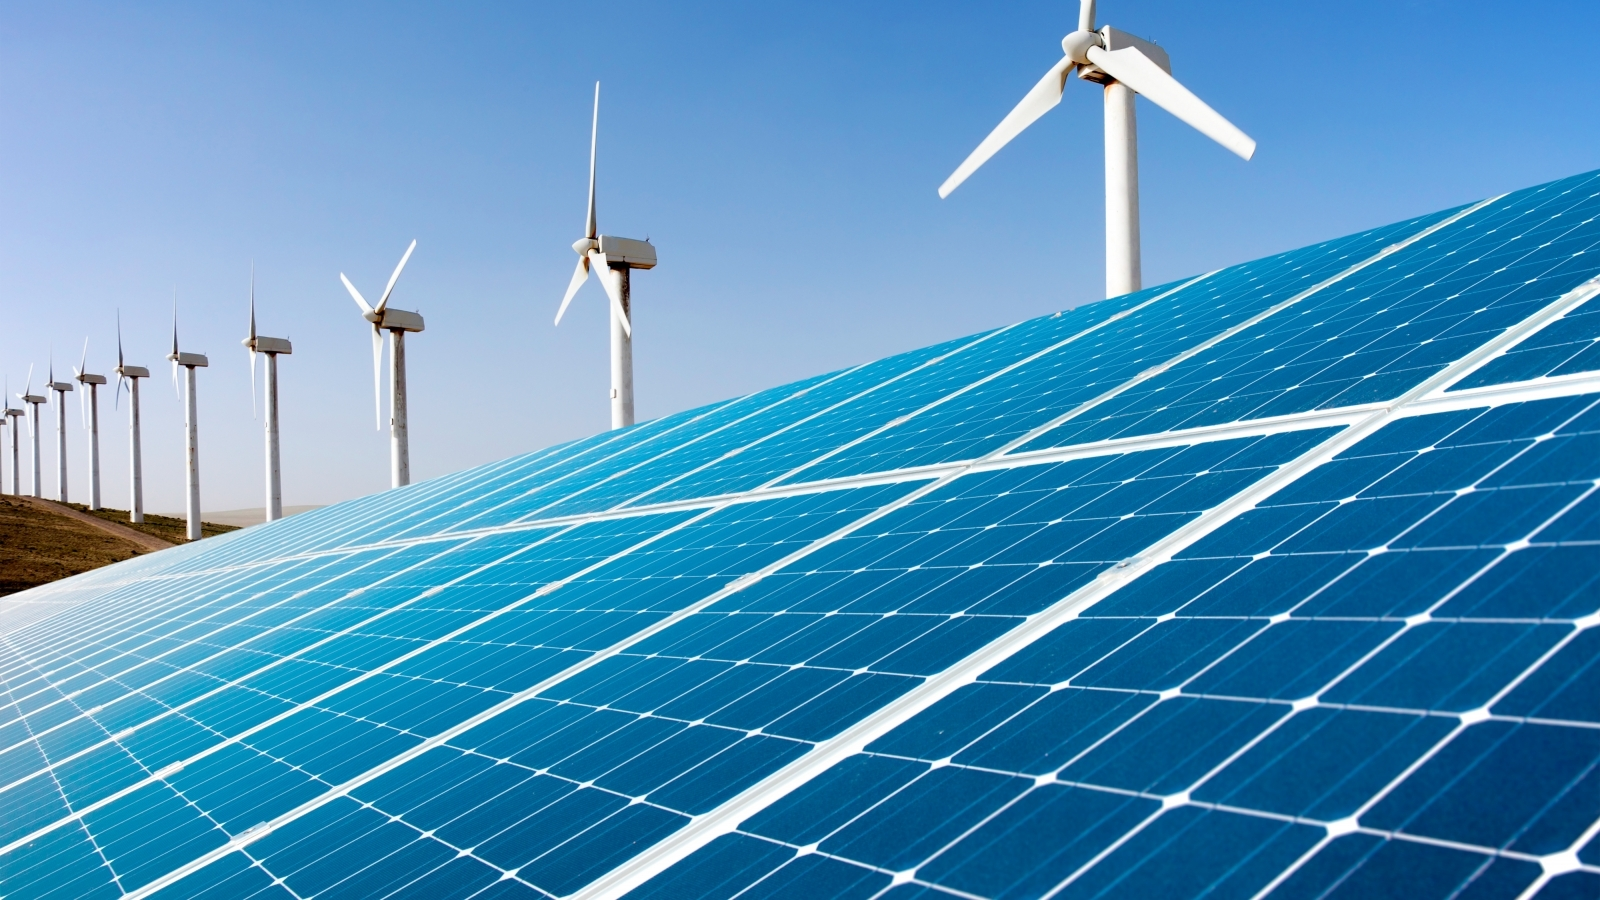 renewable energy systems 2017 renewable energy tax credits under the bipartisan budget act of 2018, the renewable energy tax credits for fuel cells, small wind turbines, and geothermal heat pumps now feature a gradual step down in the credit value, the same as those for solar energy systems.